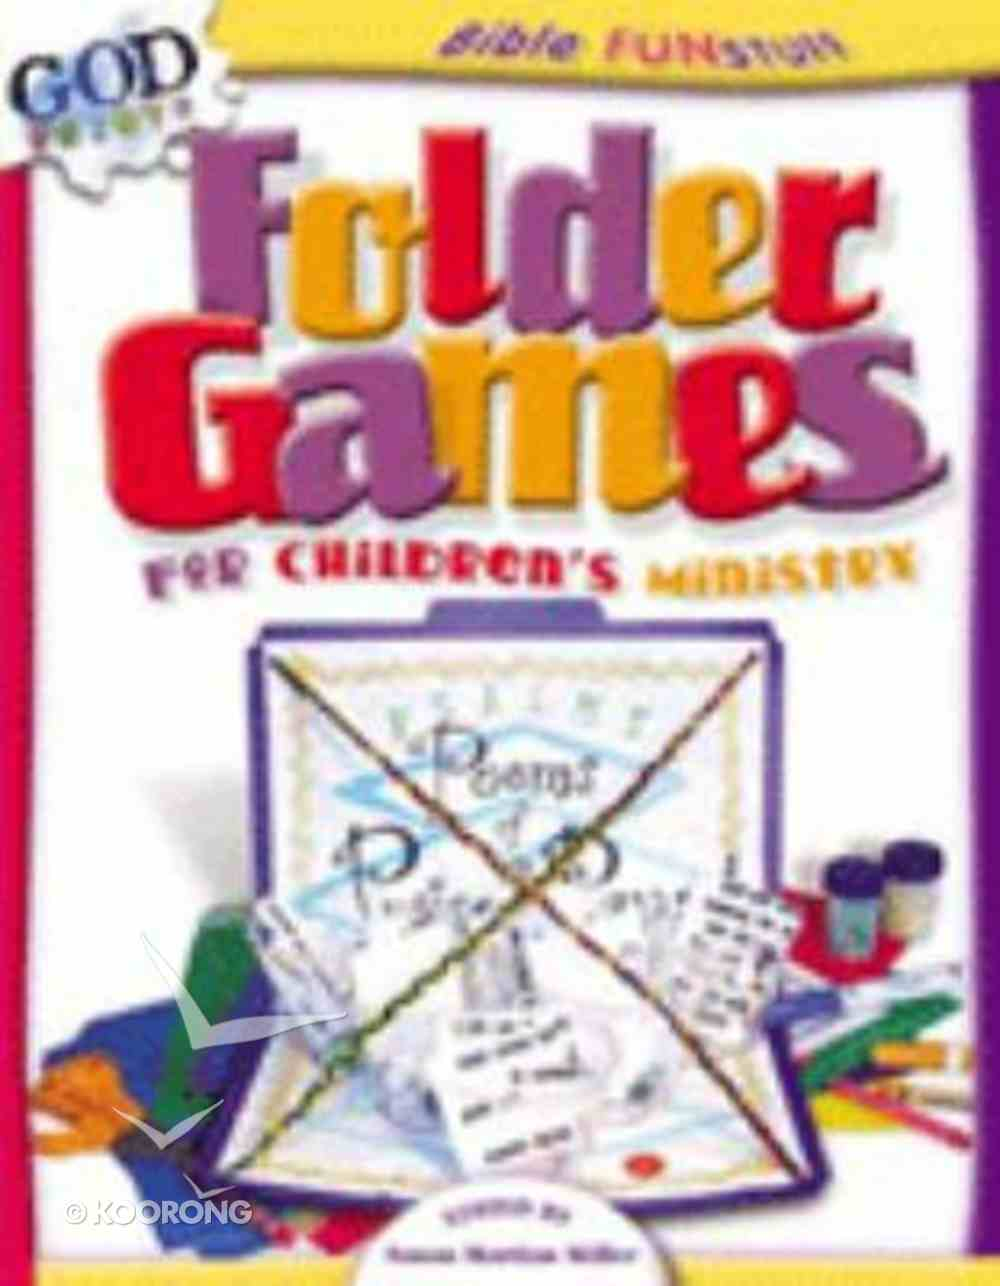 Folder Games For Children's Ministry (Godprints Bible Fun Stuff Series) Paperback